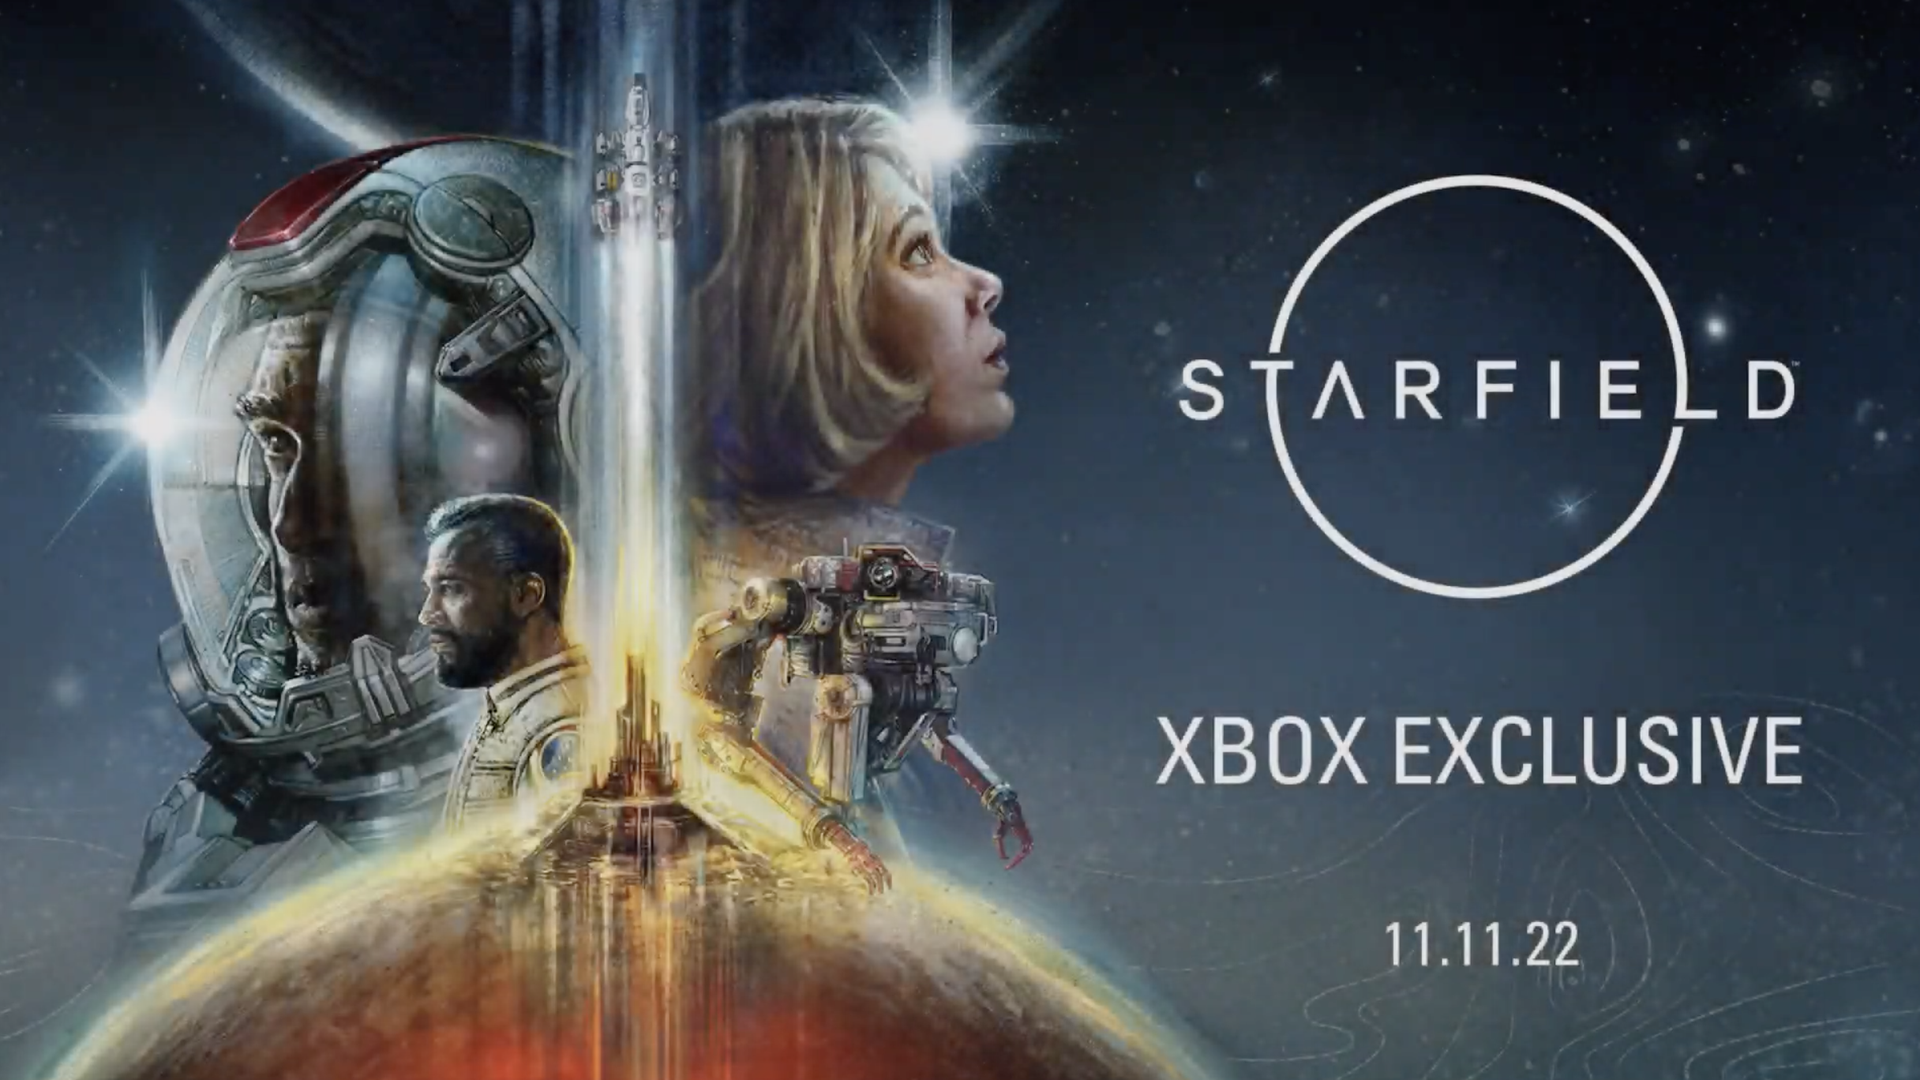 Bethesda apologizes for Starfield's confirmed Xbox and PC exclusivity